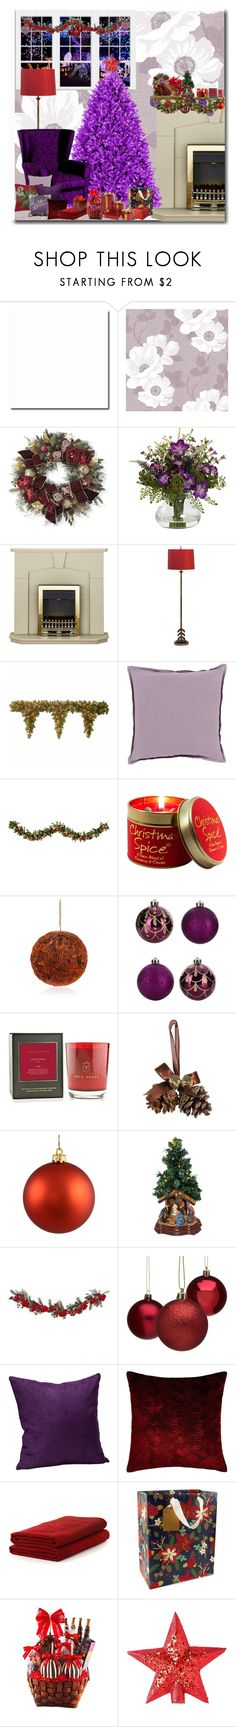 """CHRISTMAS TREE LIGHTS"" by nefertiti1373 ❤ liked on Polyvore featuring interior, interiors, interior design, home, home decor, interior decorating, House & Home, Frontgate, Scalamandré Maison and National Tree Company"